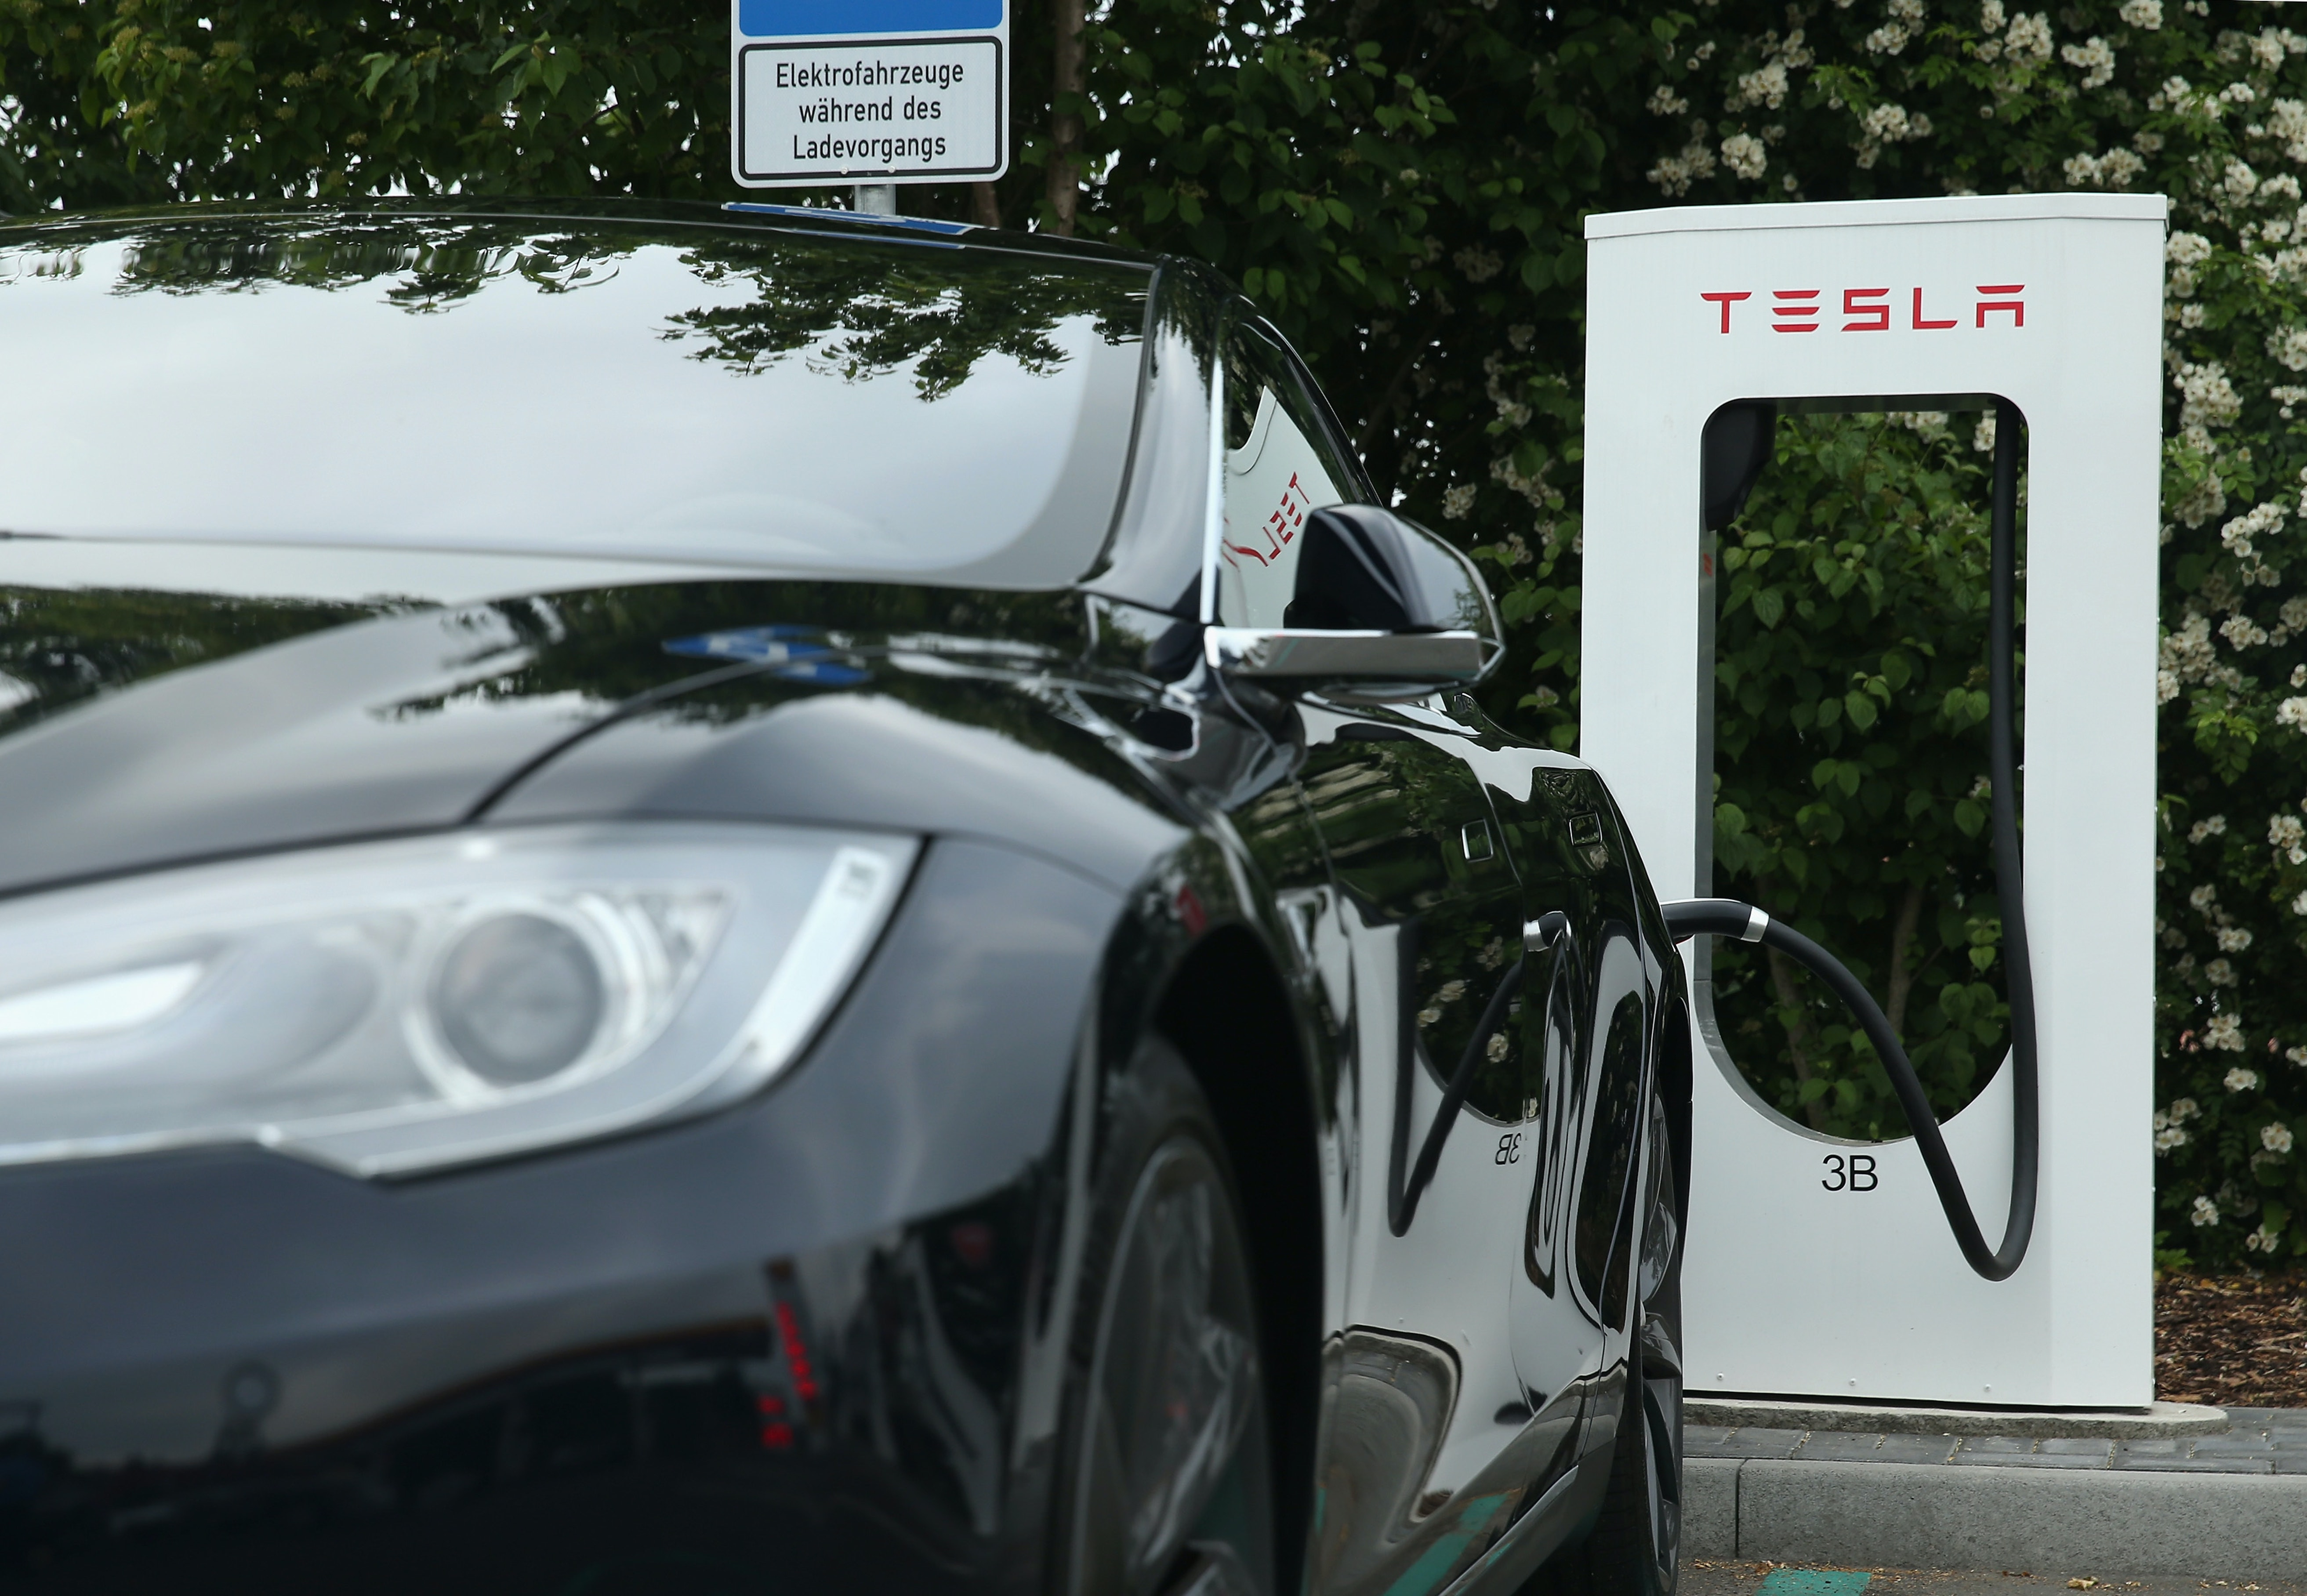 A Tesla electric-powered sedan stands at a Tesla charging station at a highway rest stop along the A7 highway on June 11, 2015 near Rieden, Germany.